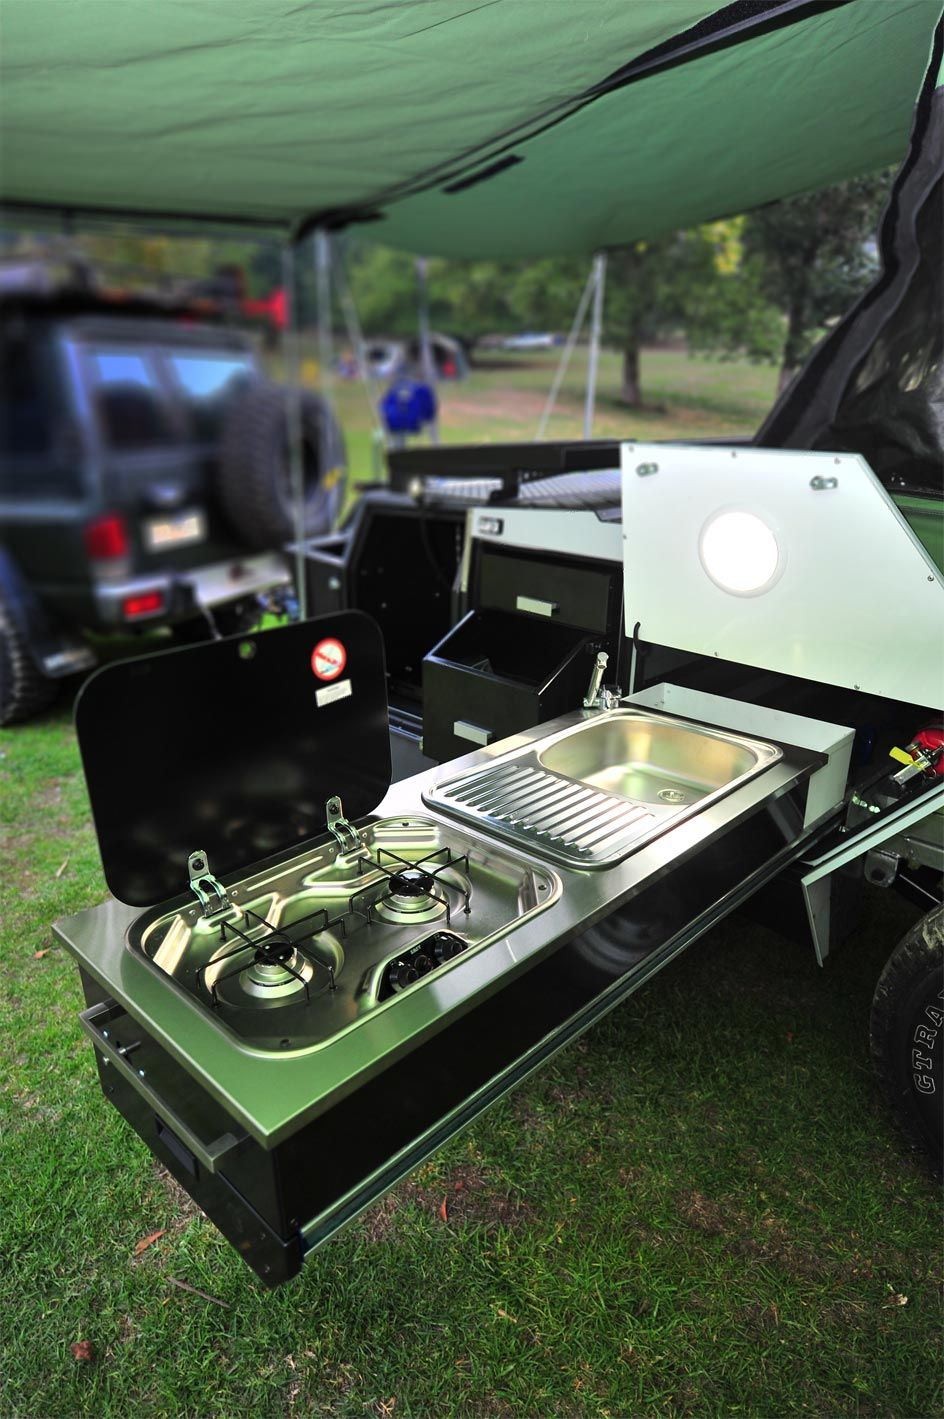 Camping Stove And Sink Unit